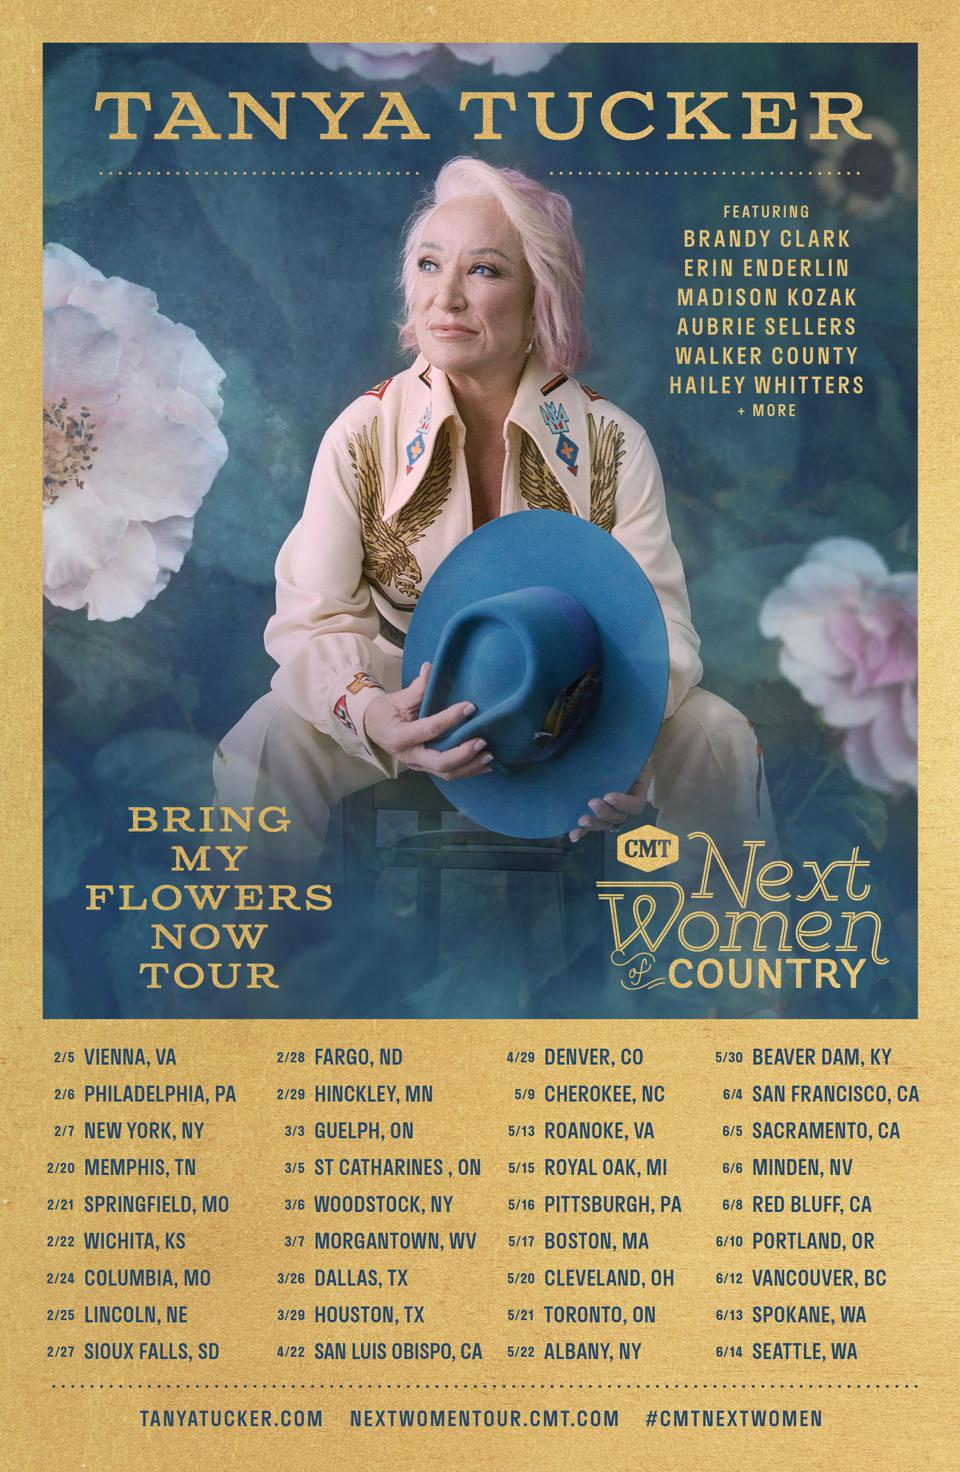 CMT Next Women in Country: Bring My Flowers Now Tour Schedule